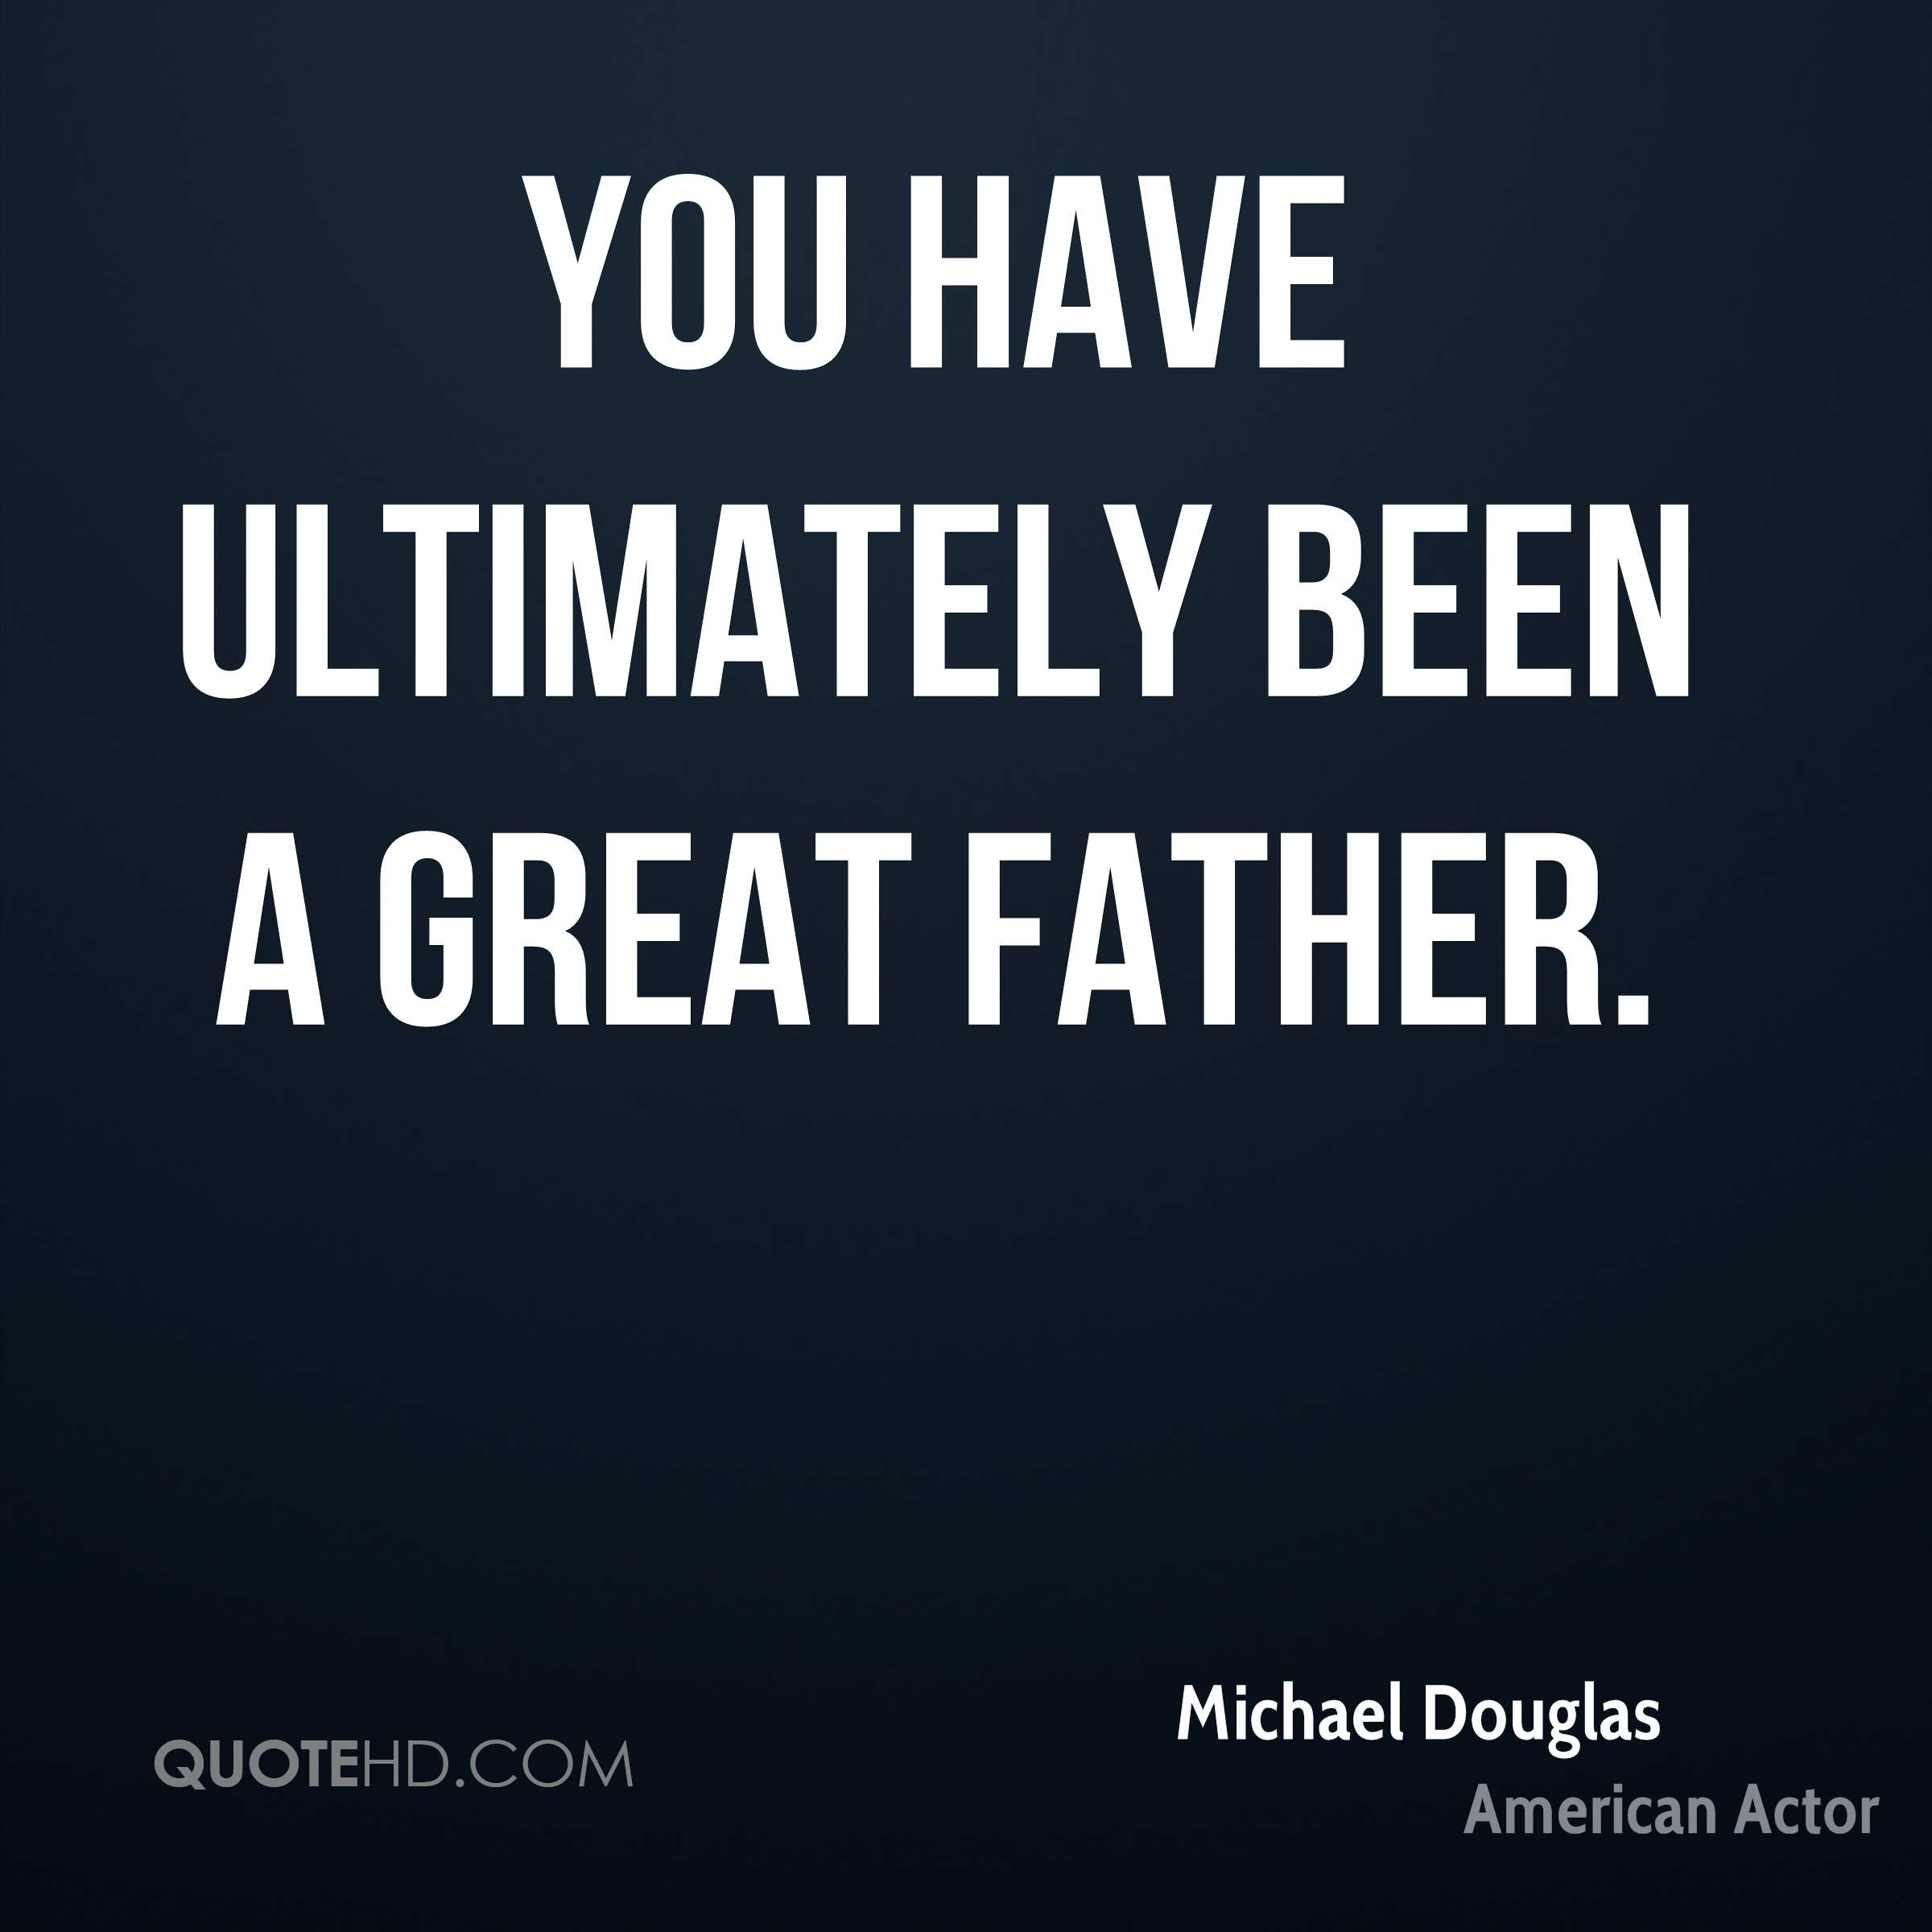 You have ultimately been a great father.